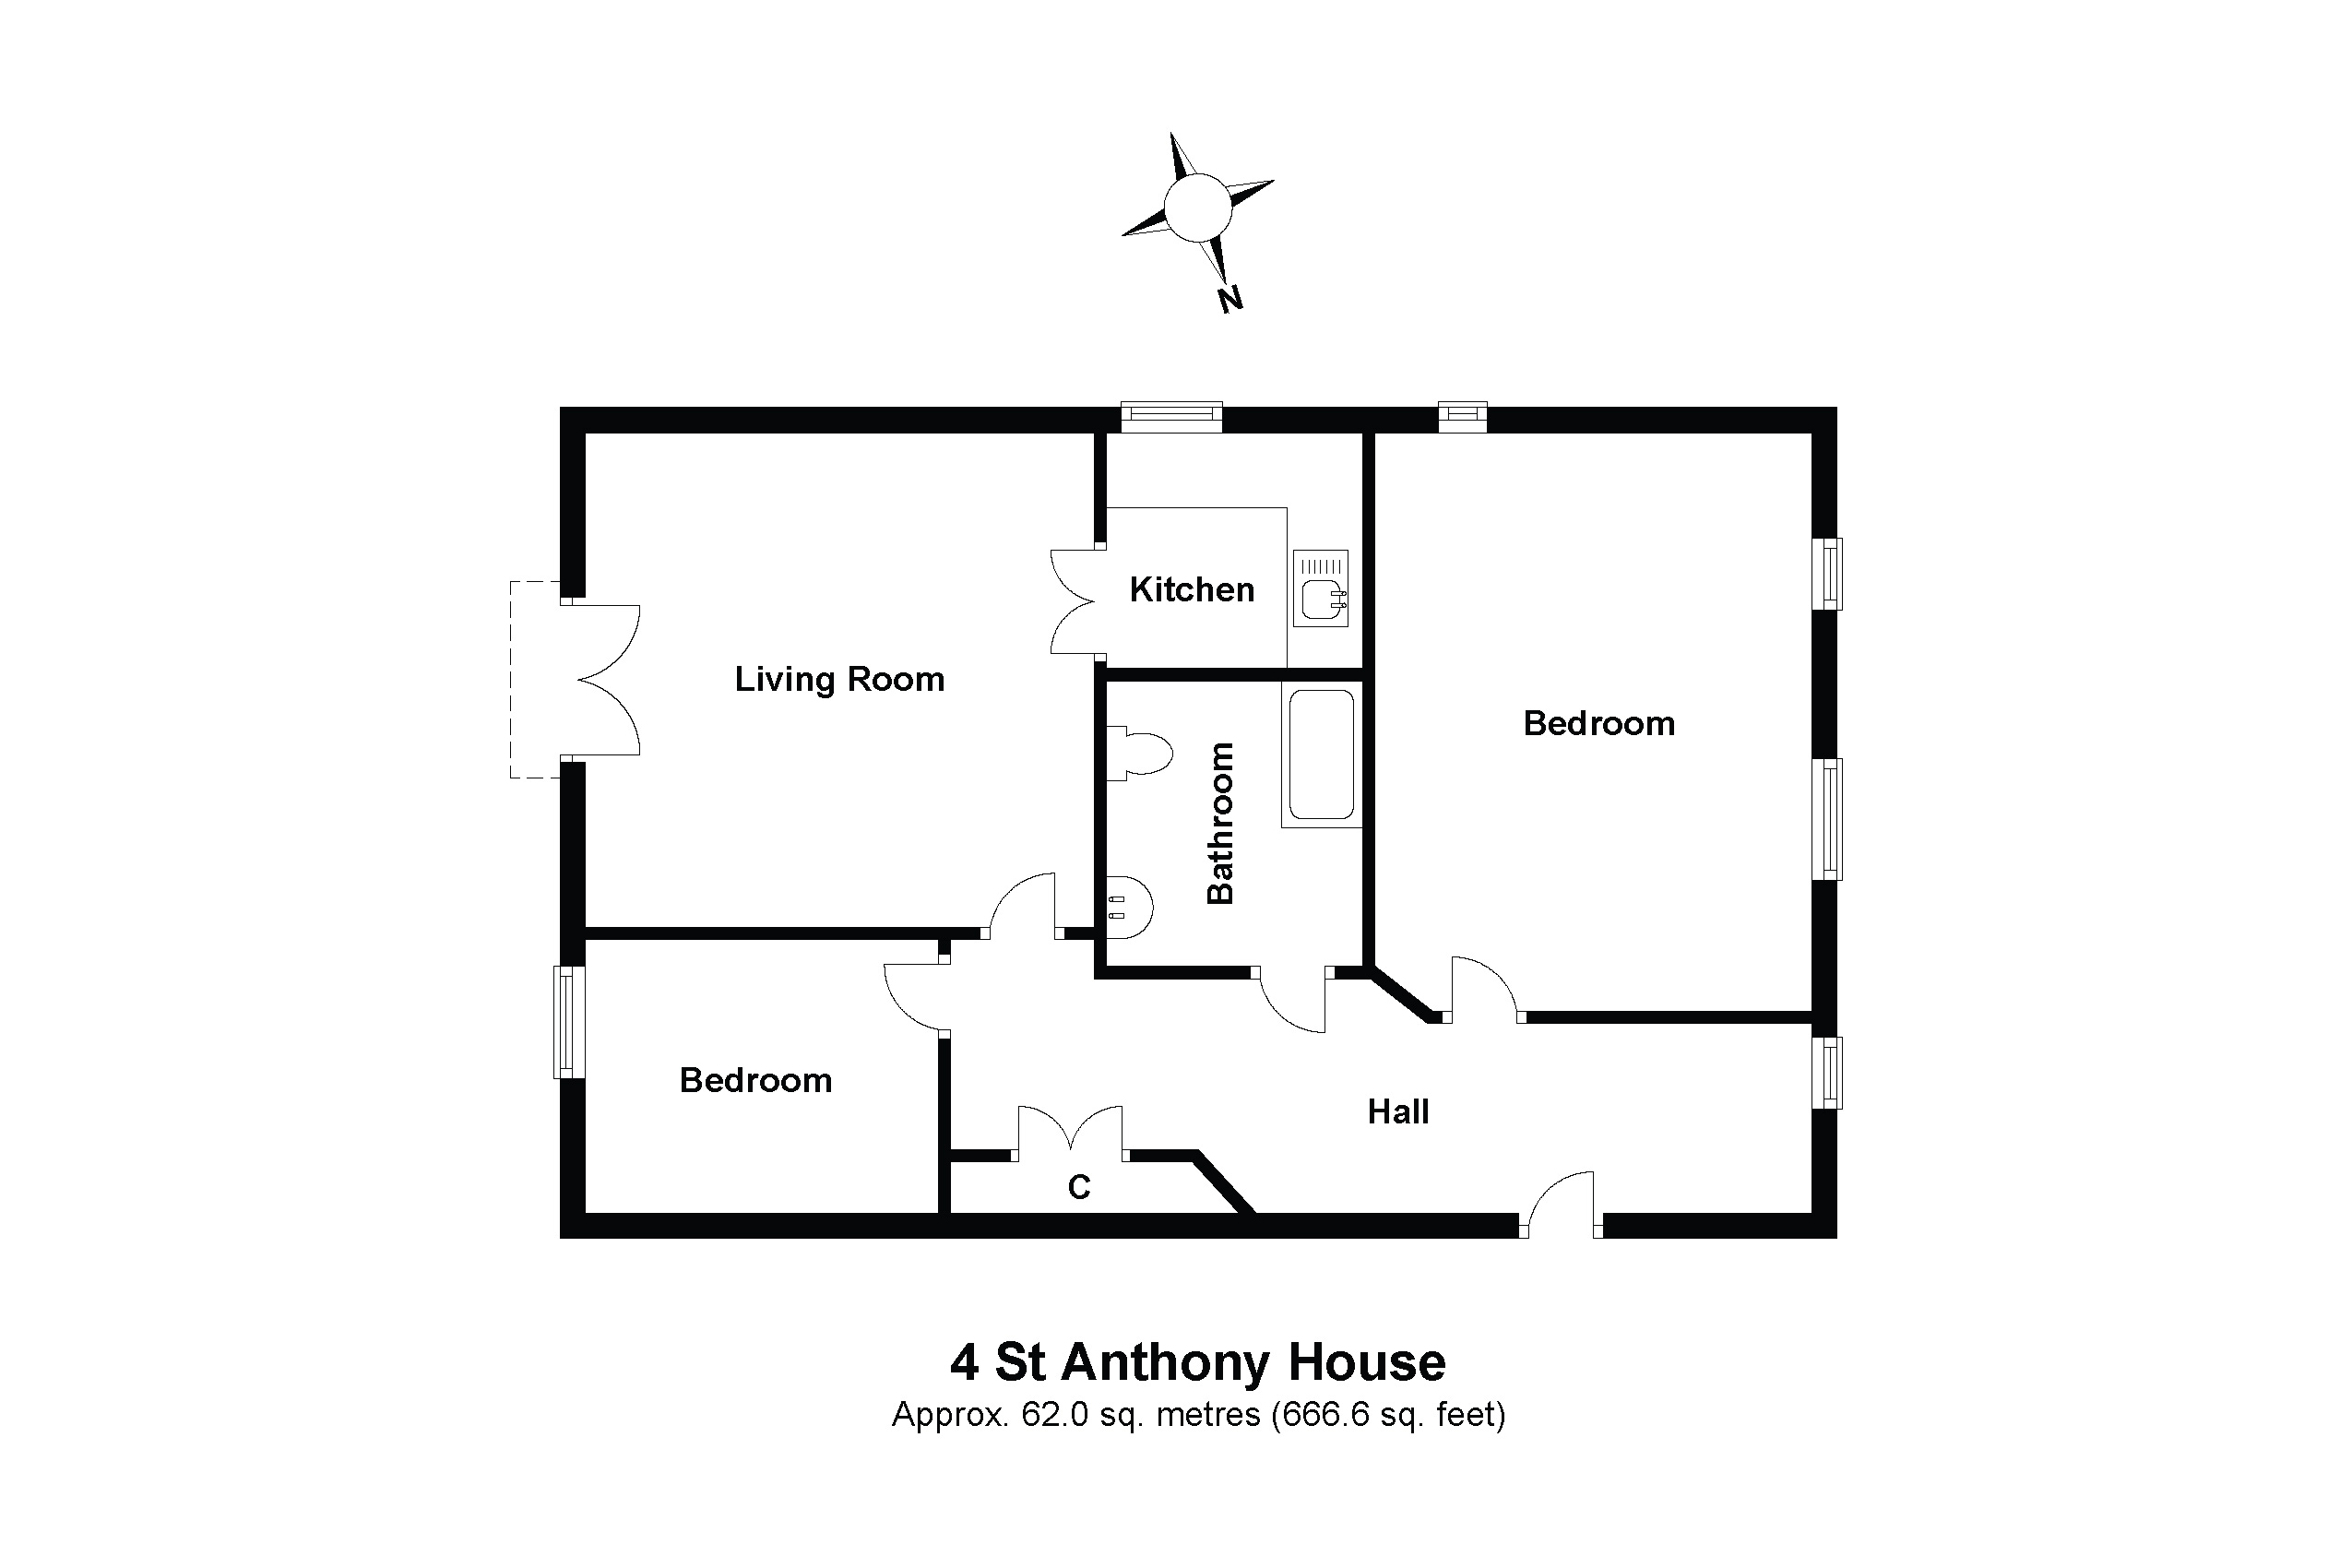 4 St Anthony House Floorplan